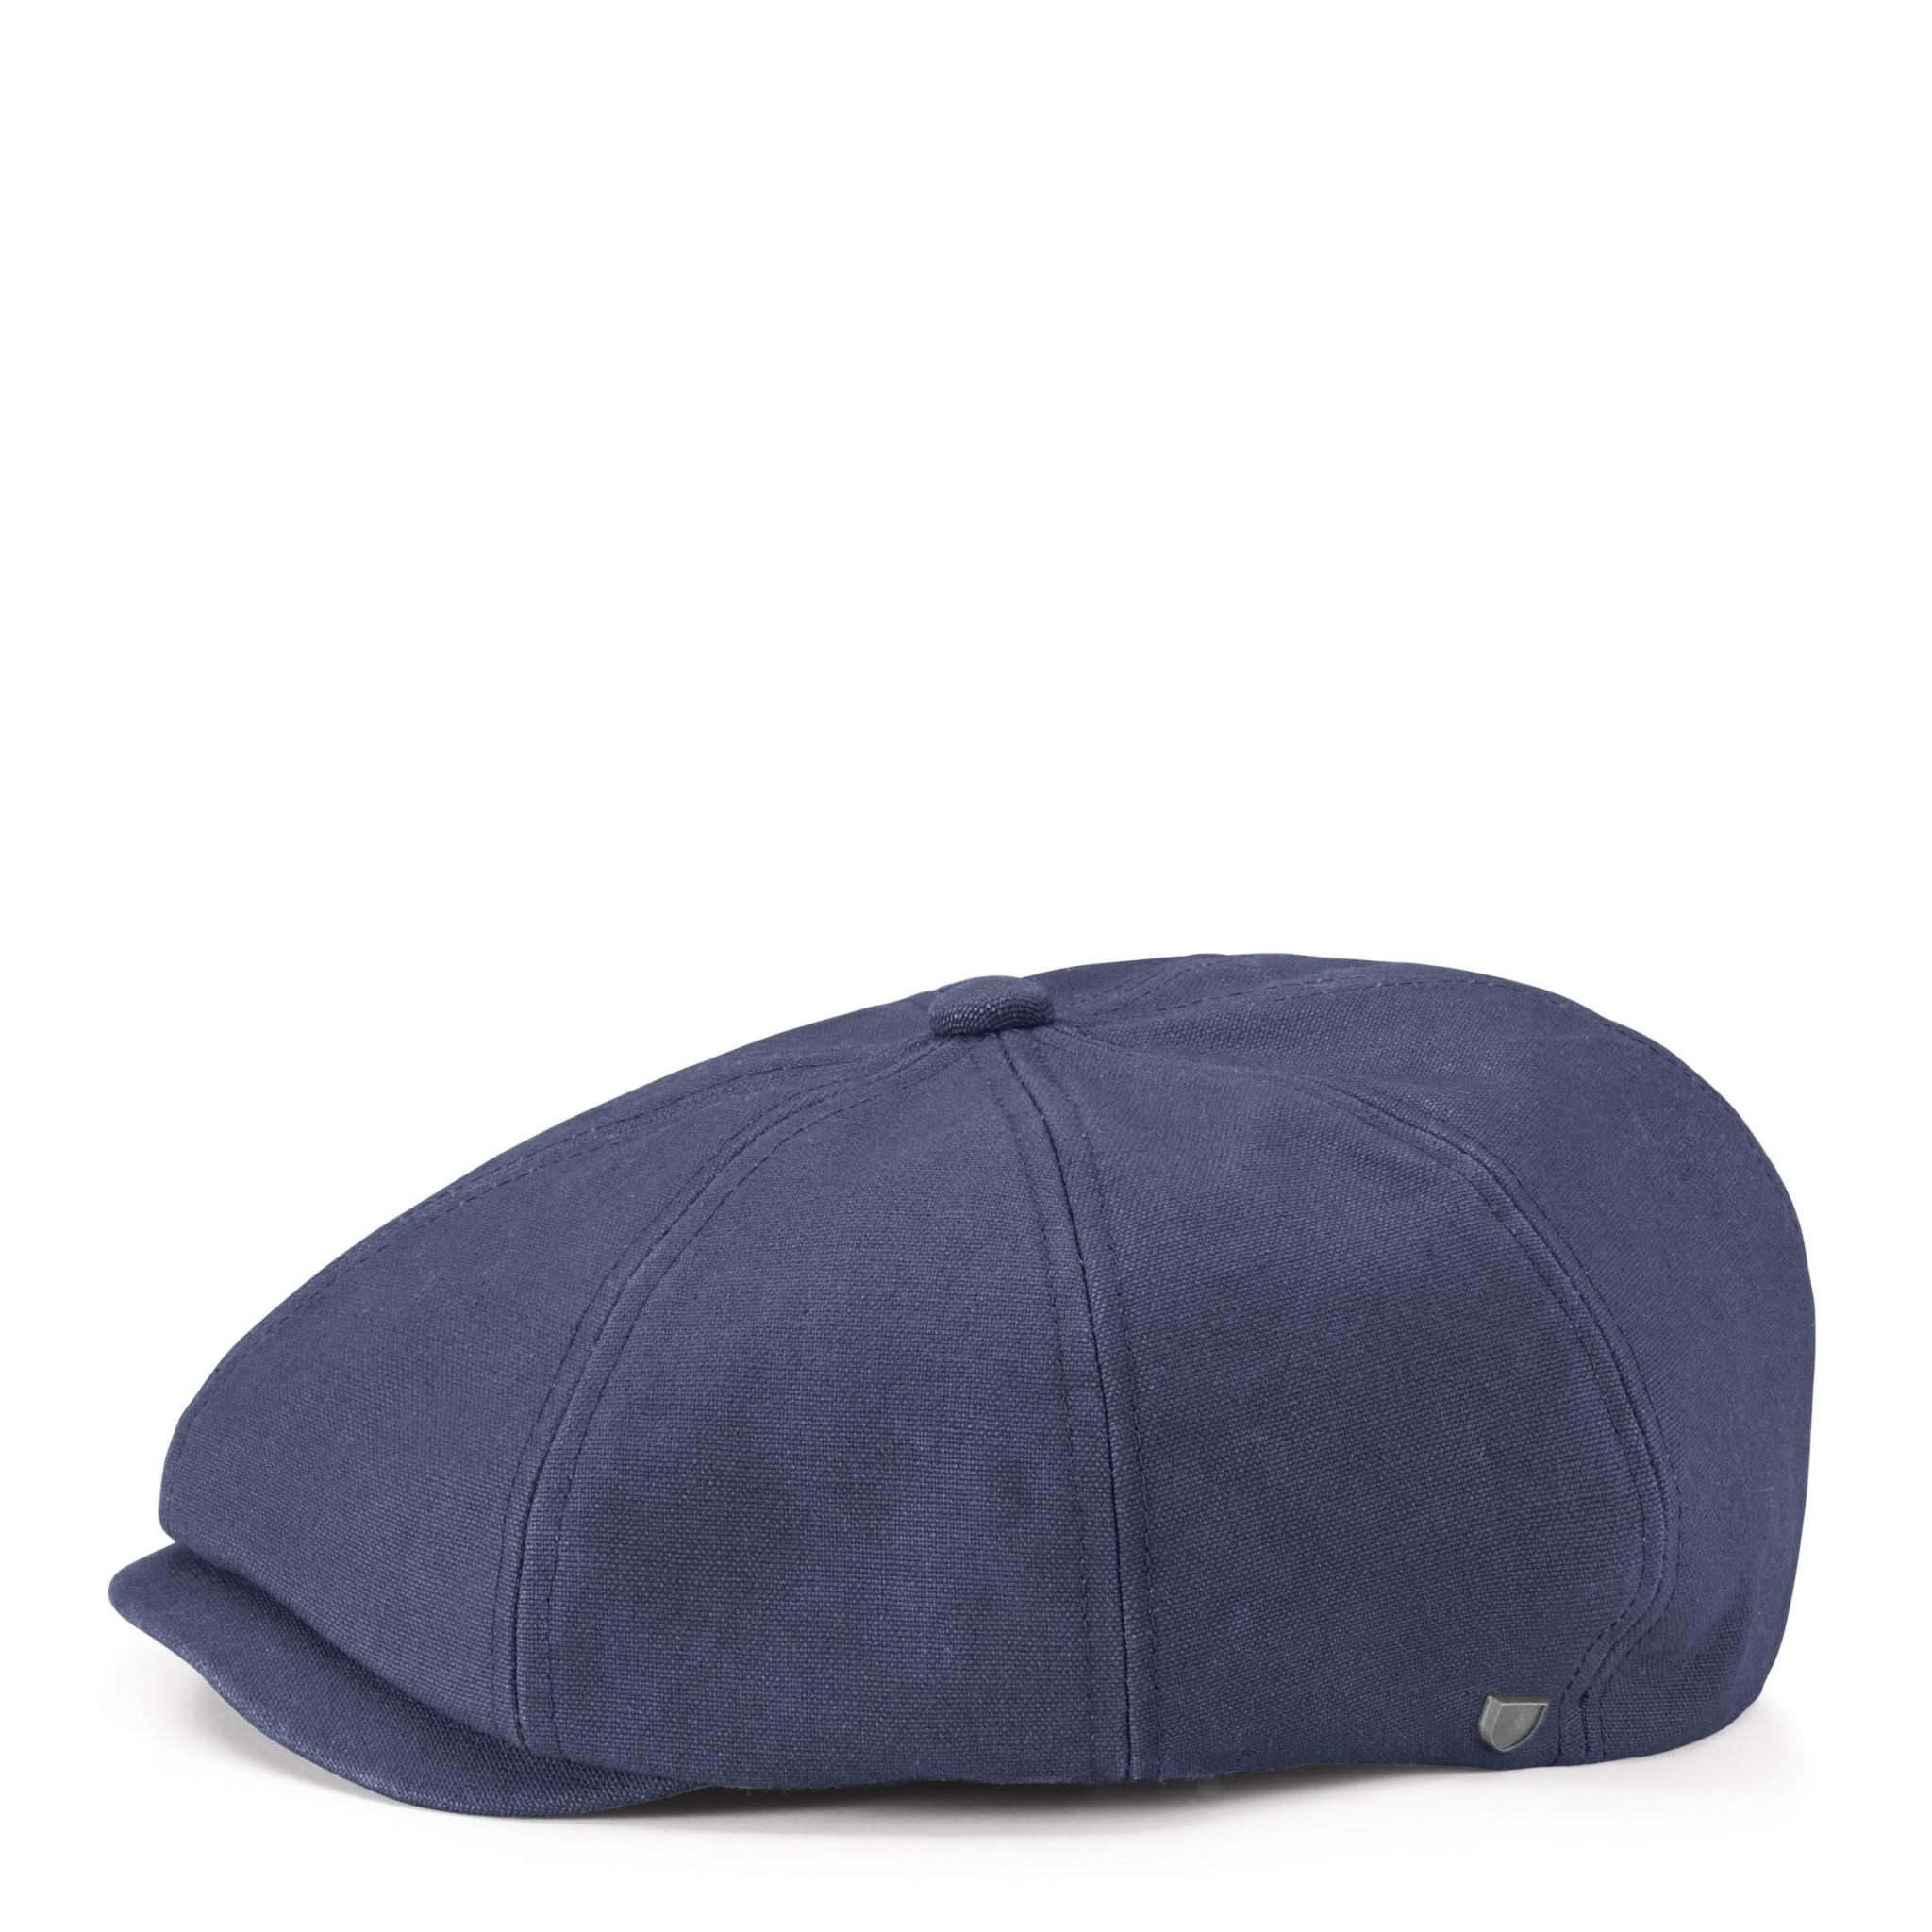 Brixton Brixton Brood Reserve Snap Cap - Washed Navy